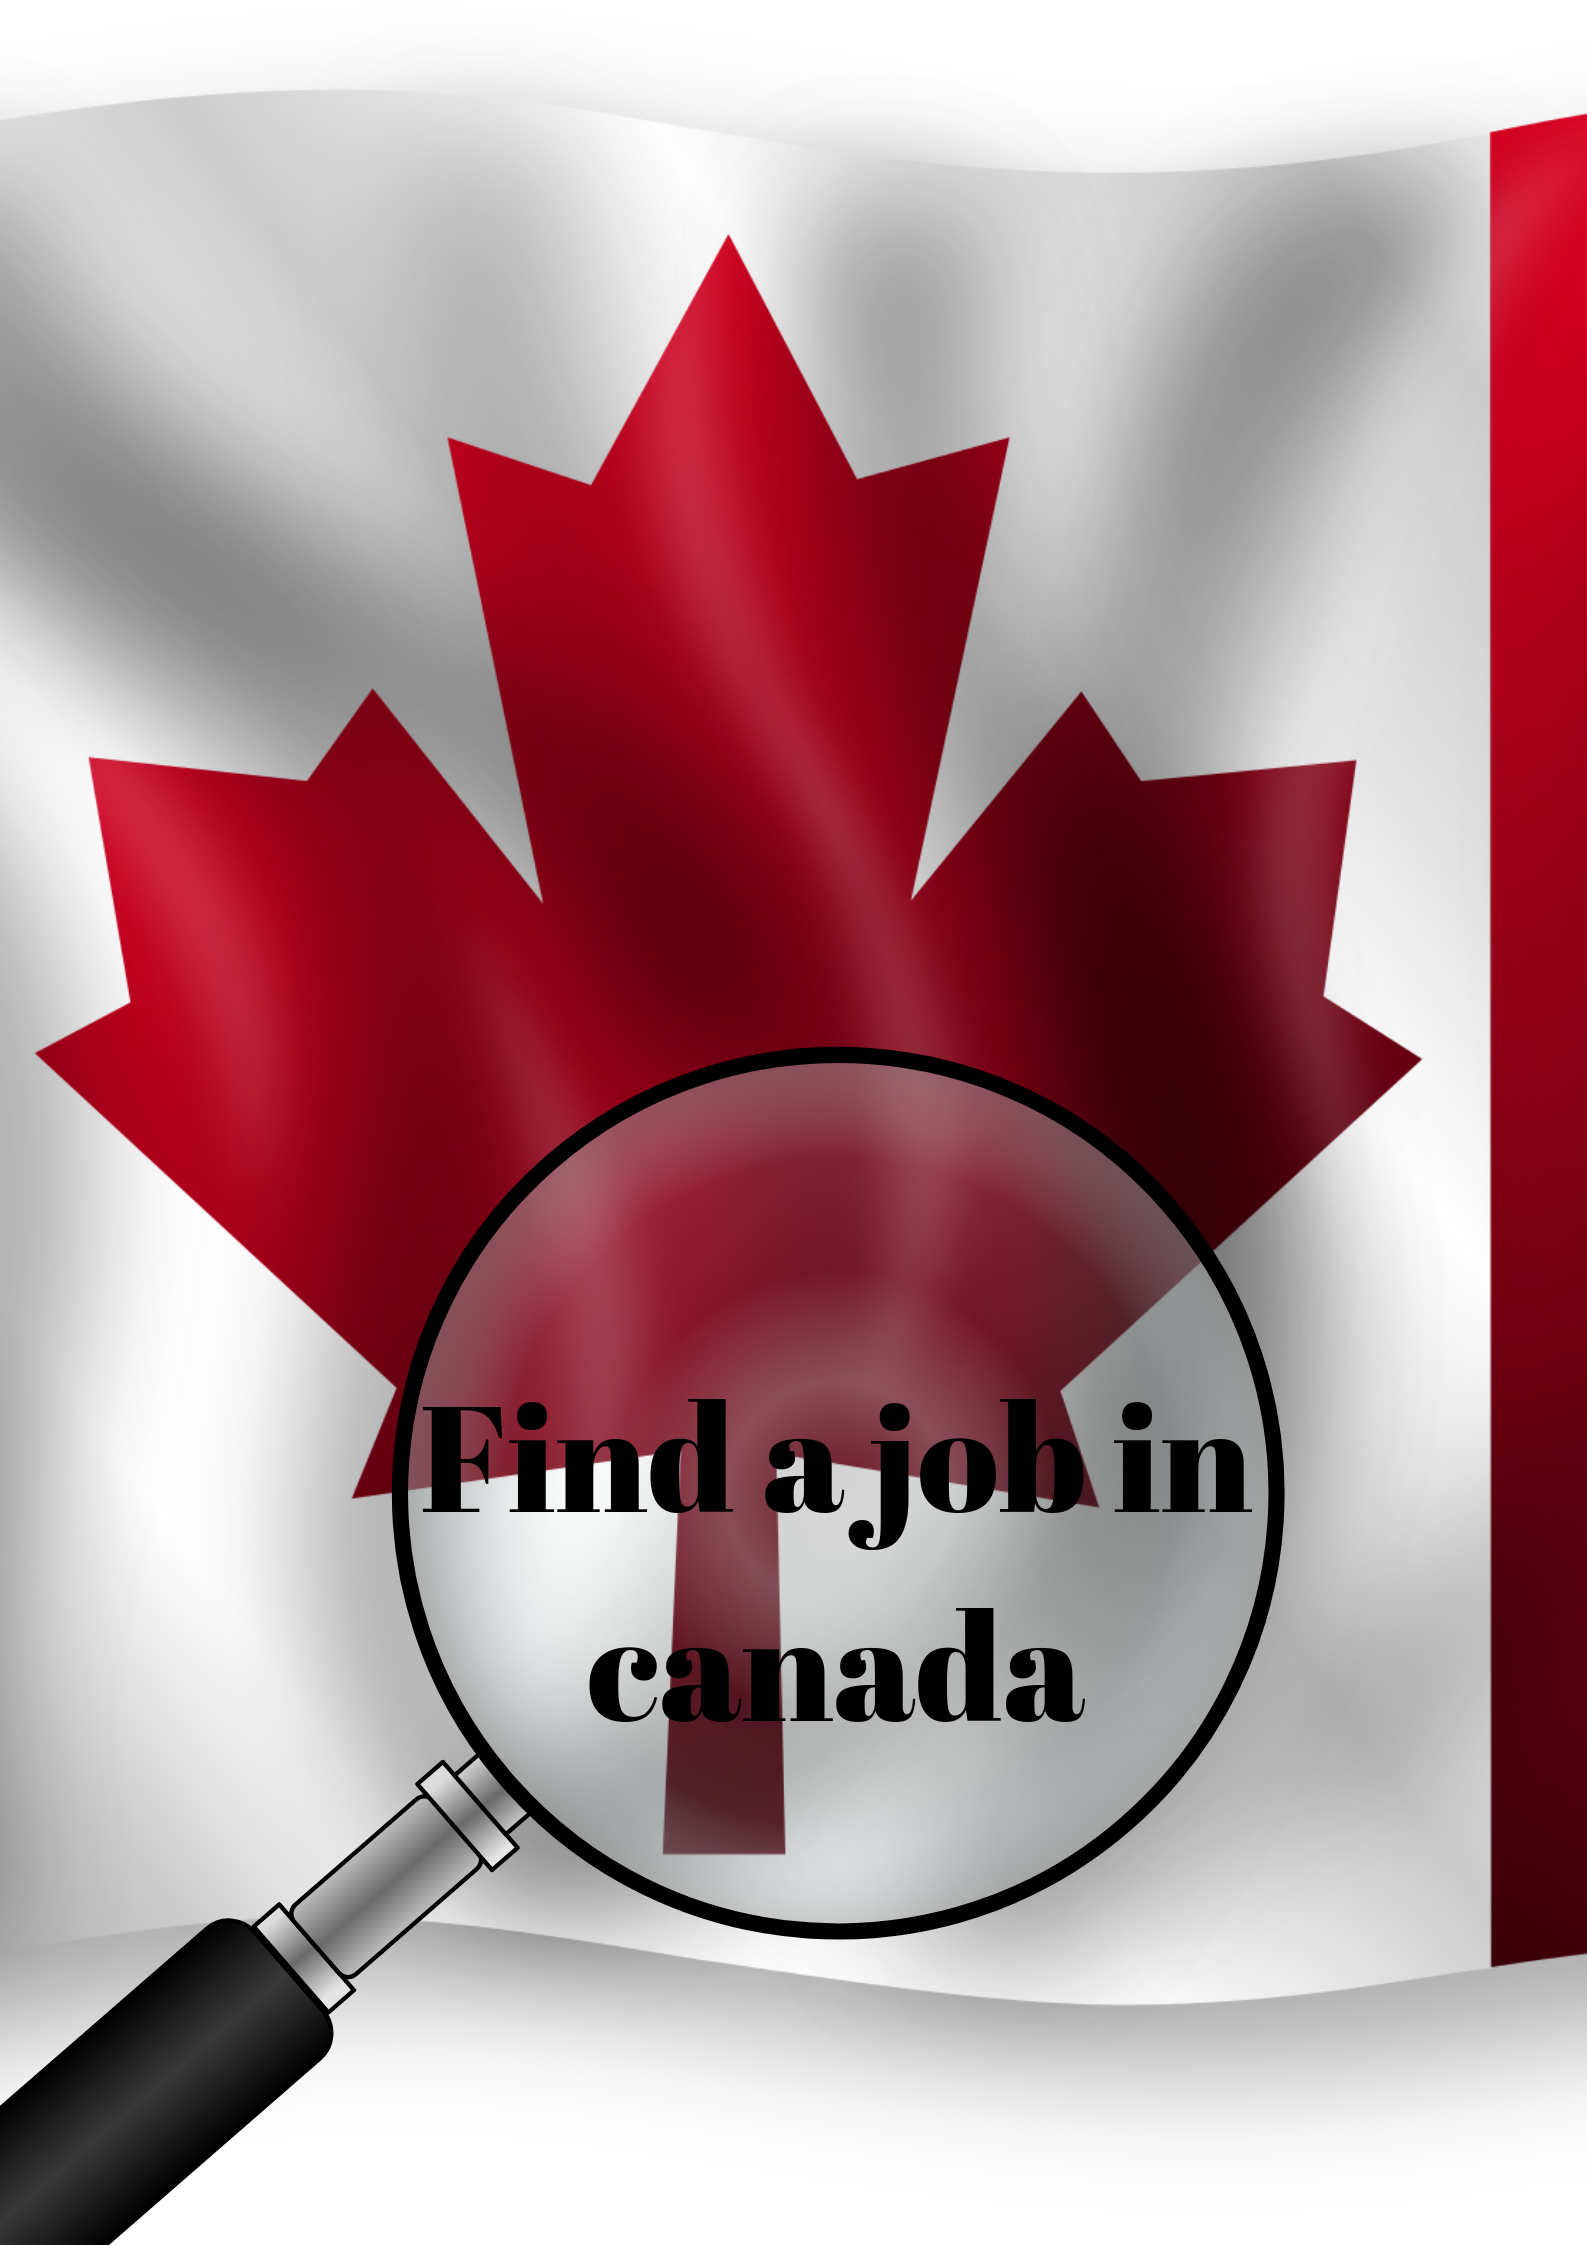 Find a job in canada